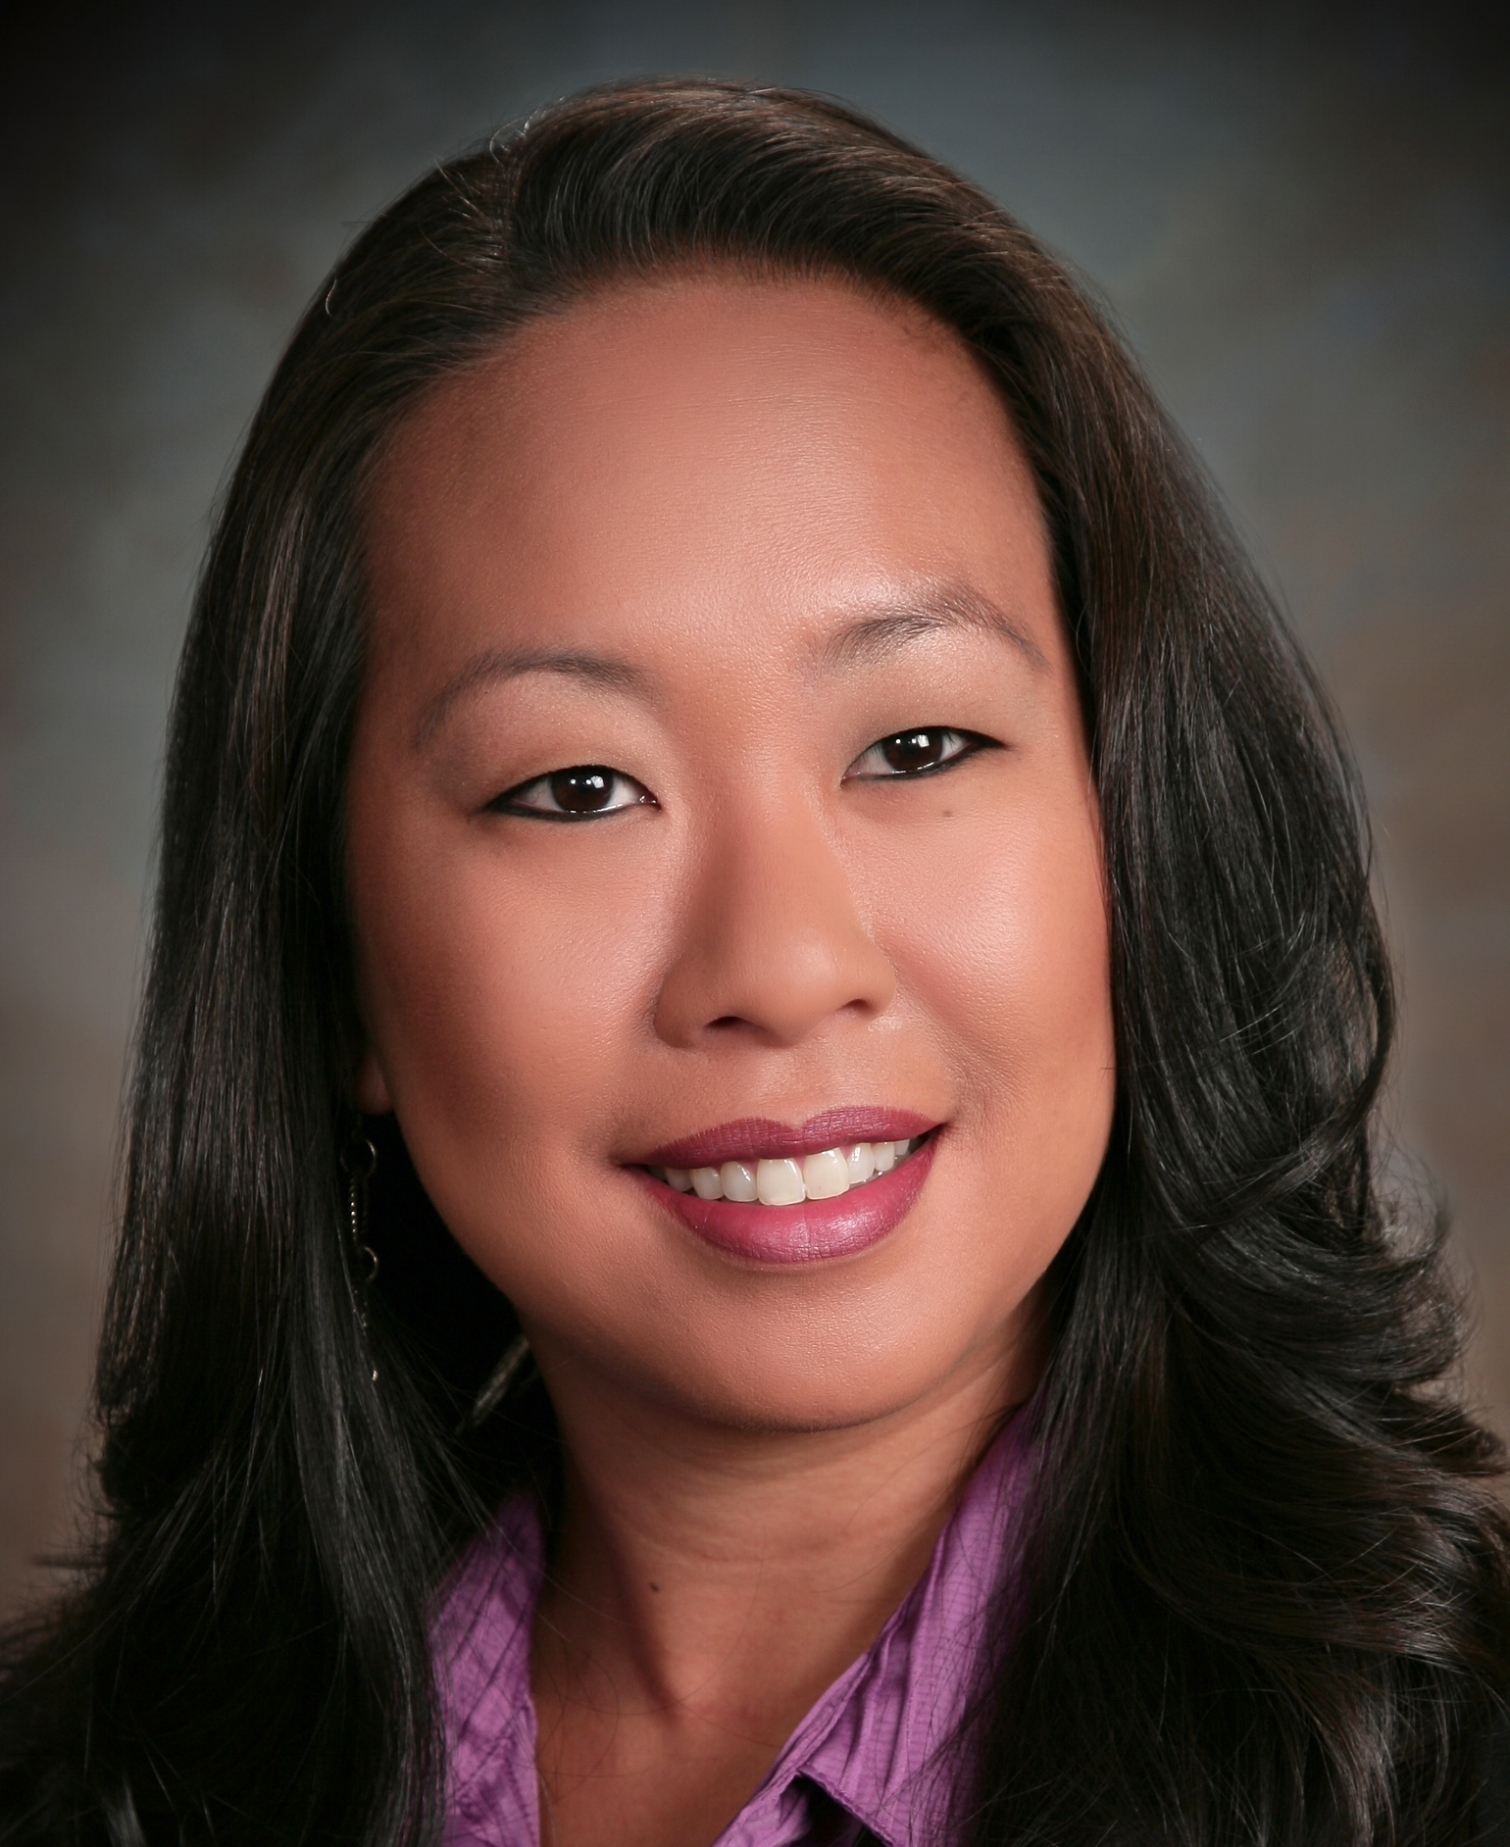 Teresa Wu, MD, FACEP   Director, Point of Care Ultrasound Program & Fellowships  Banner University Medical Center-Phoenix  Simulation Curriculum Director  Director, Simulation Educators Program  Associate Professor, Emergency Medicine  University of Arizona, College of Medicine-Phoenix  Phoenix, AZ